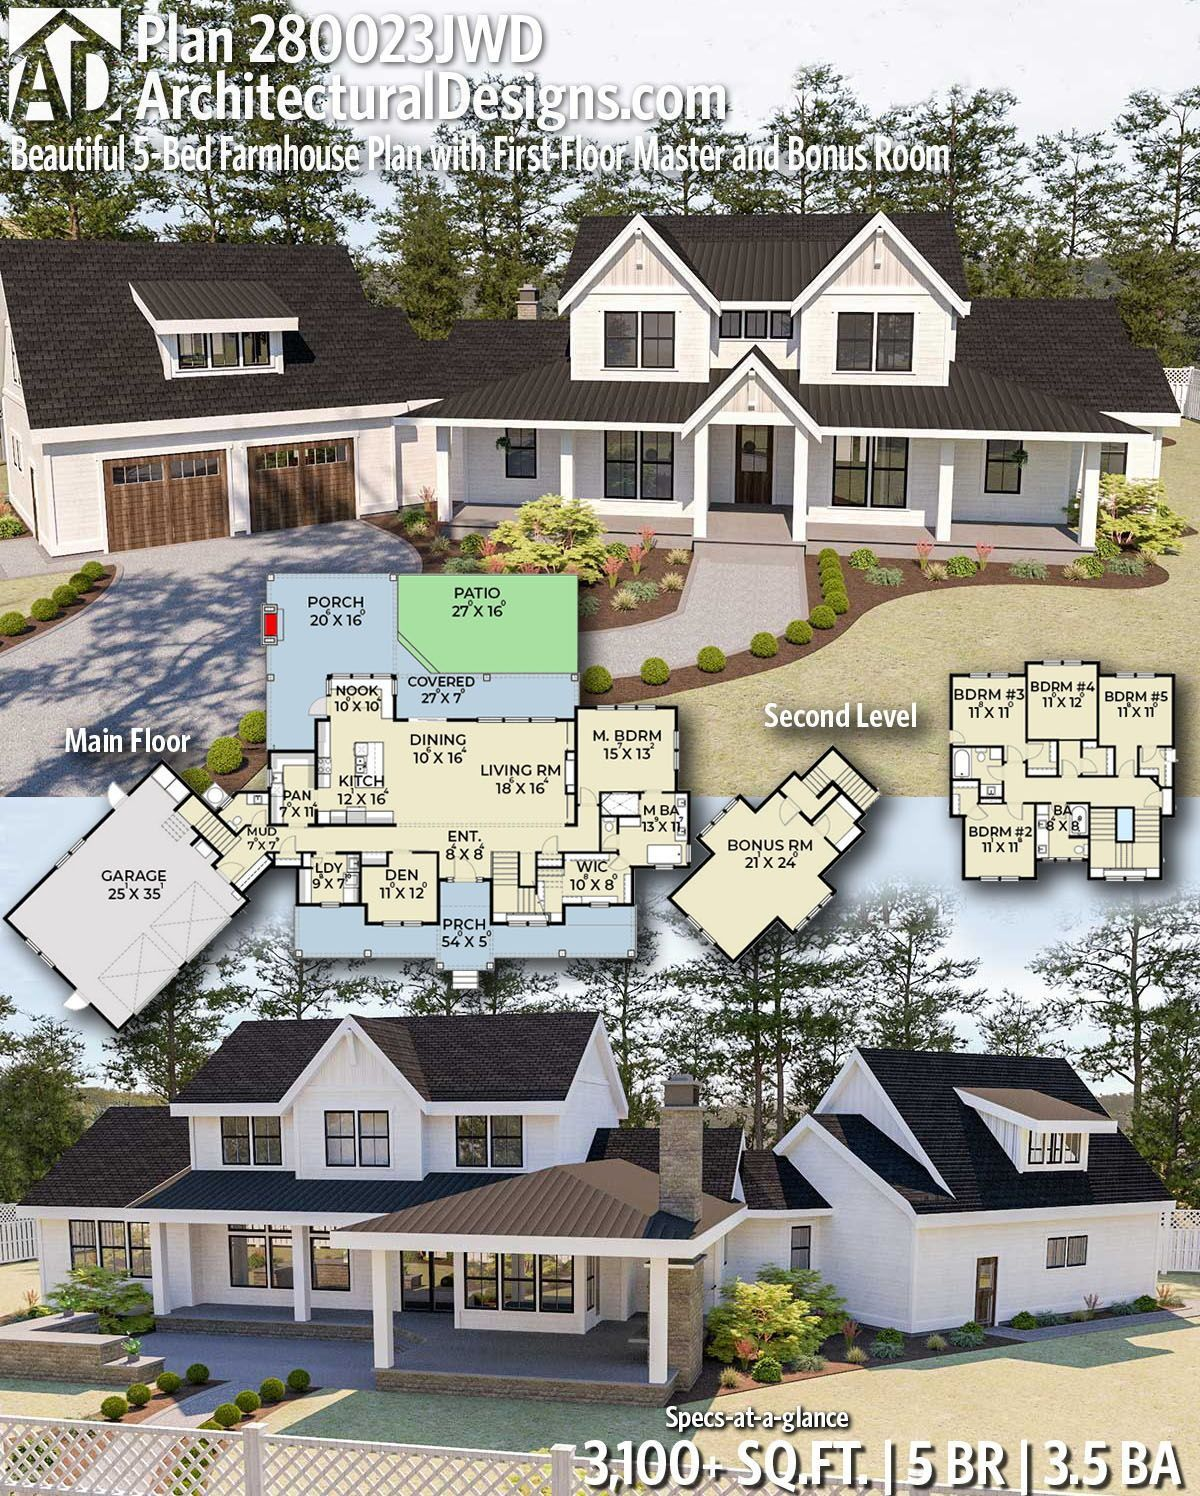 Inspirational Modern Farmhouse Exterior House Plans Layout Dream Homes Plan Jwd Beautiful 5 B In 2020 Modern Farmhouse Plans House Plans Farmhouse Dream House Plans